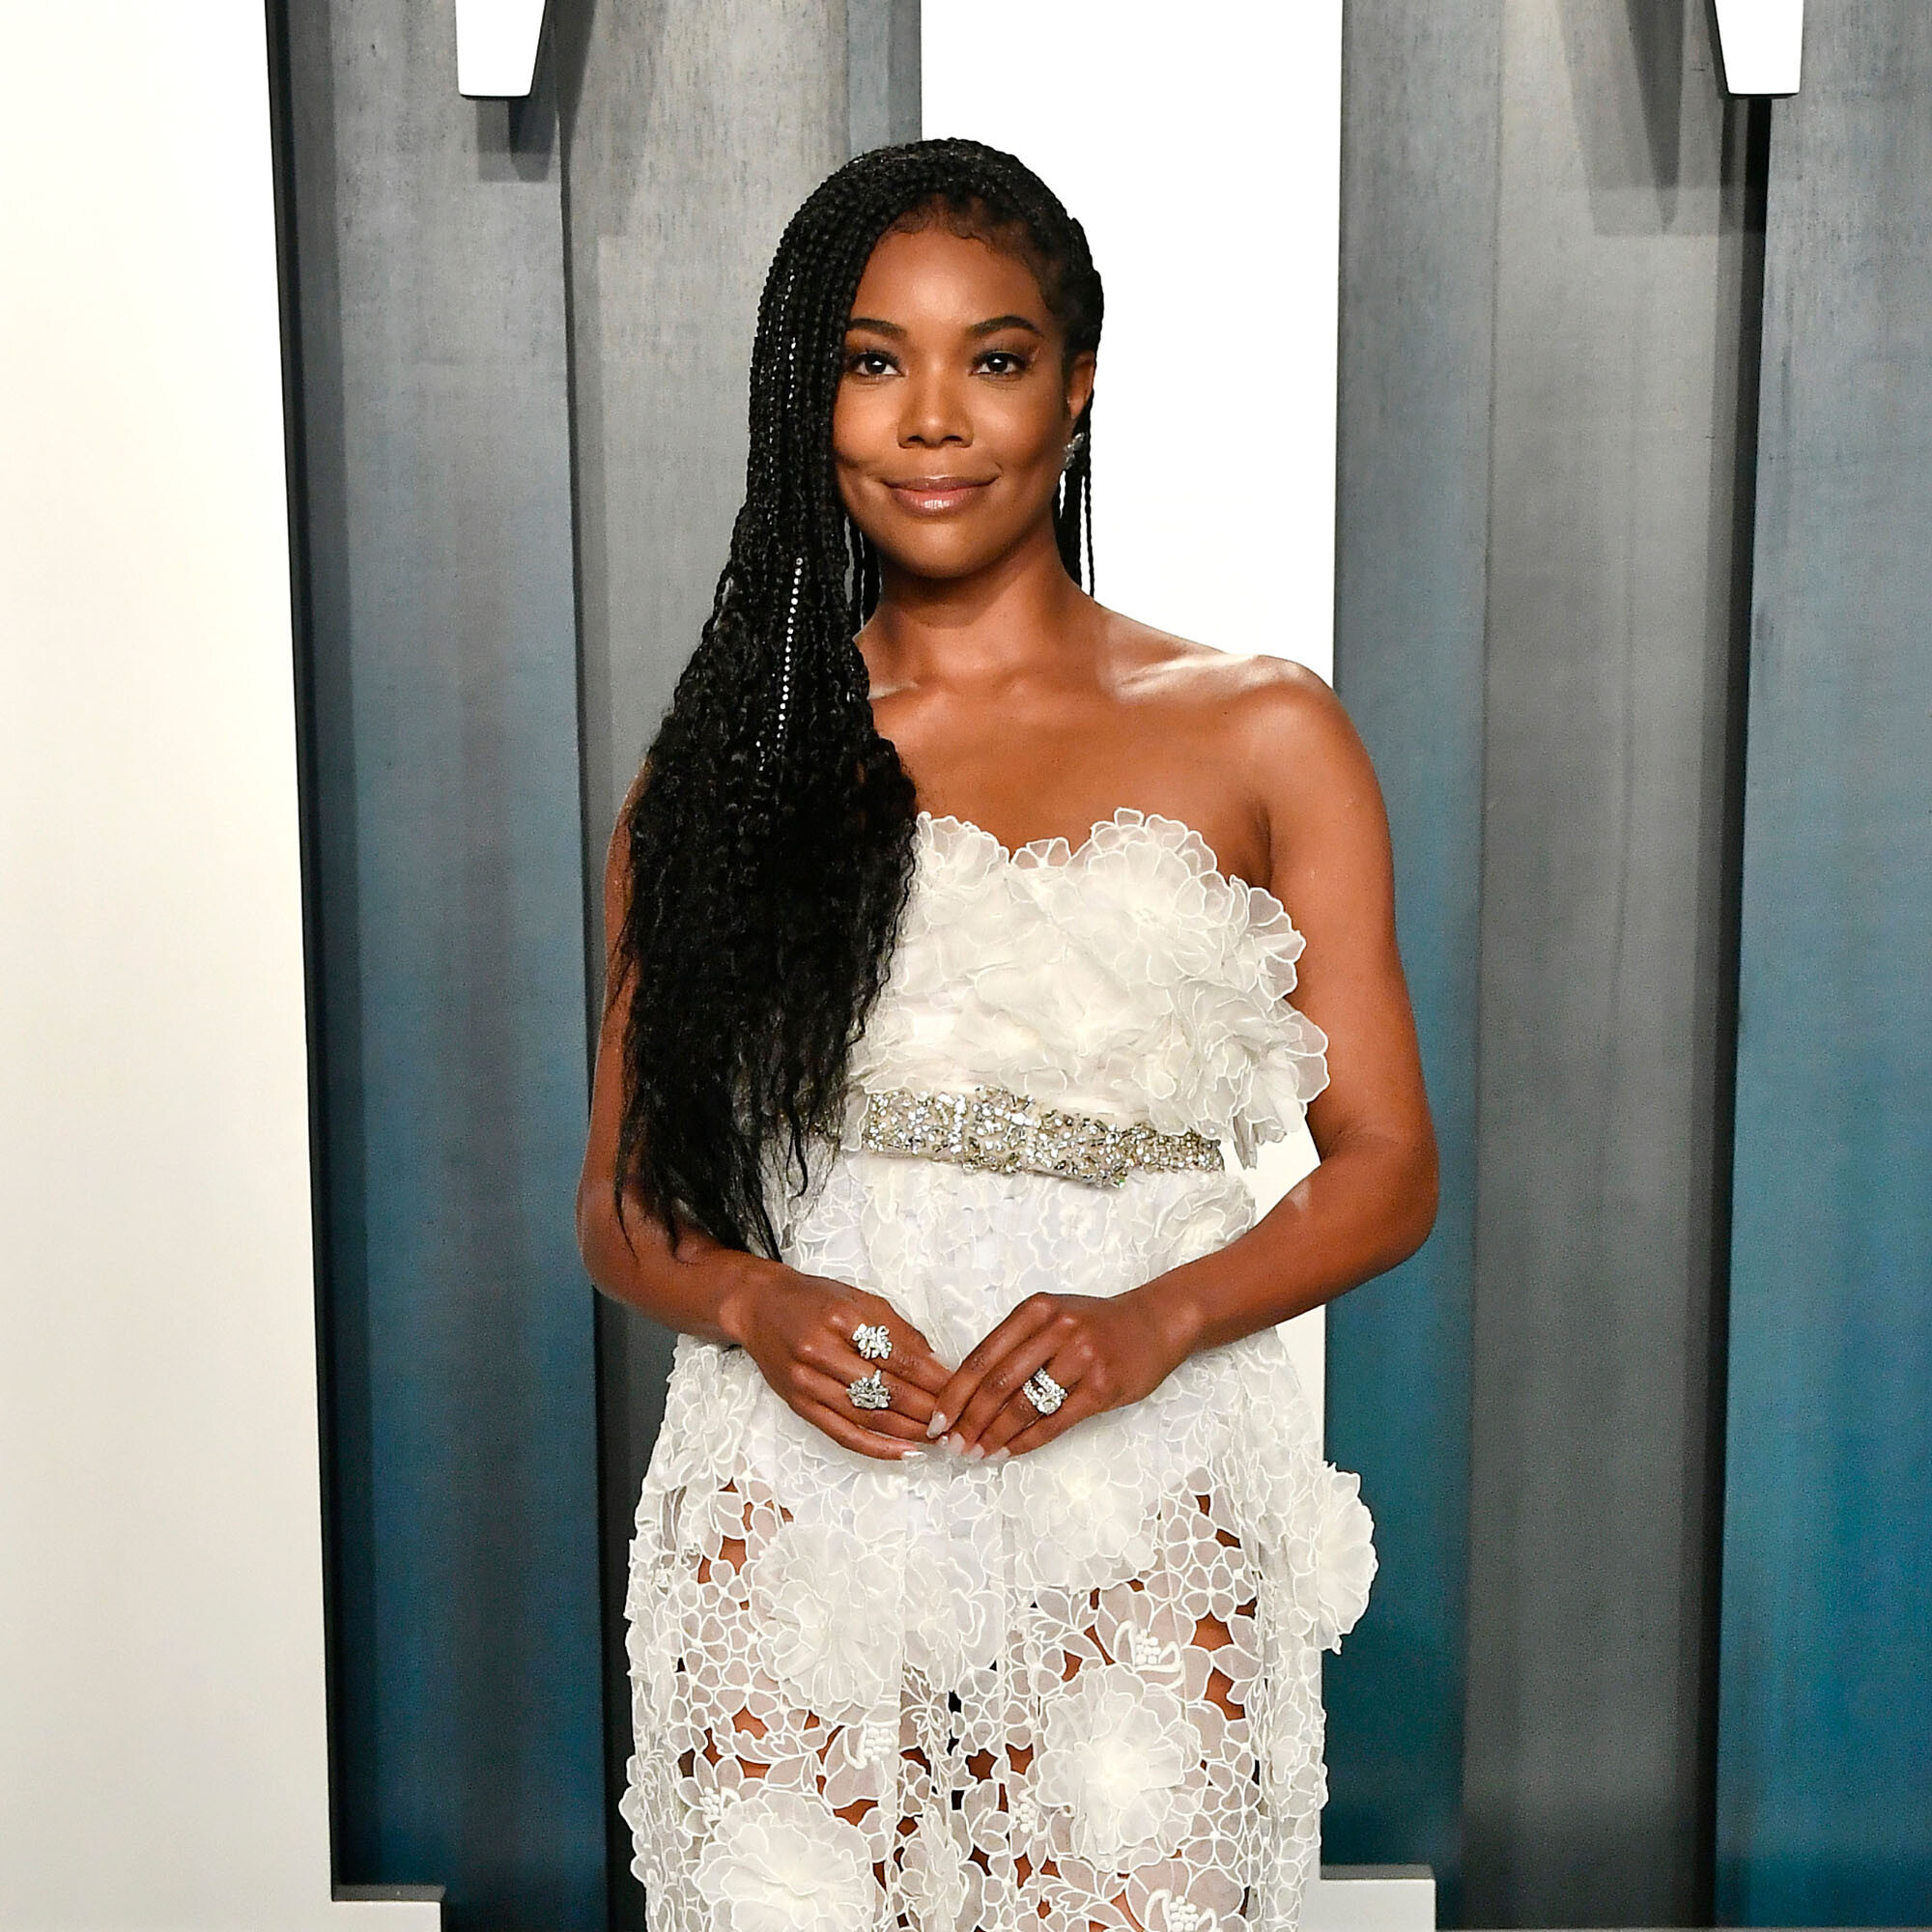 Gabrielle Union opens up about her surrogacy journey